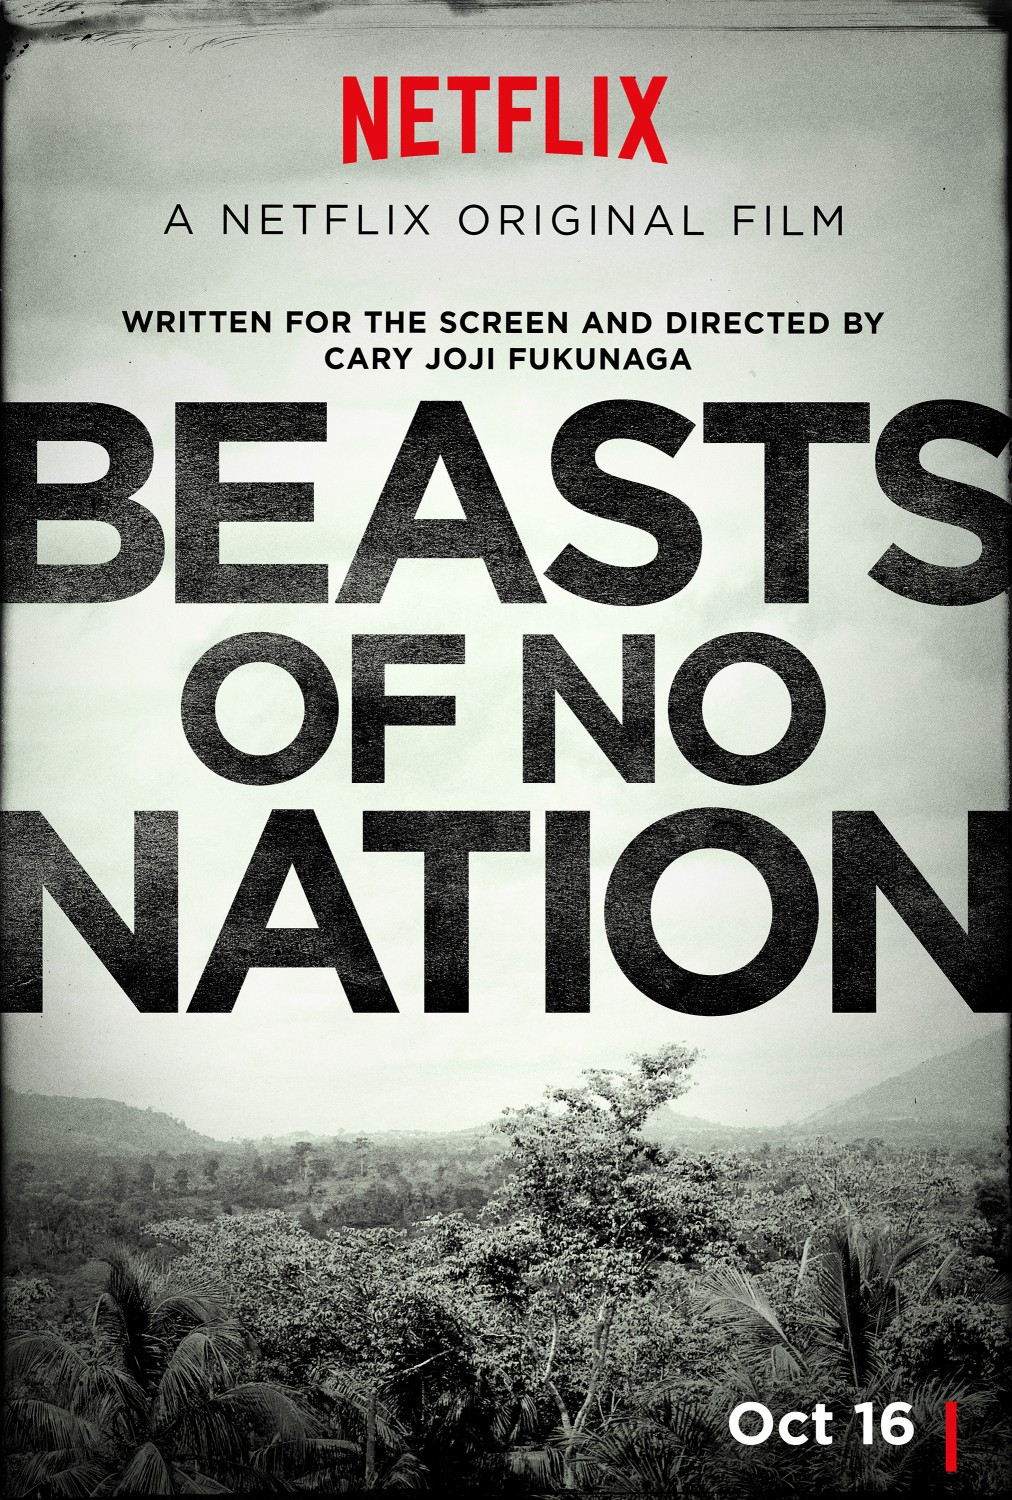 digital-entertainment-post-profession-scribe-Beasts-of-No-Nation-Poster-1